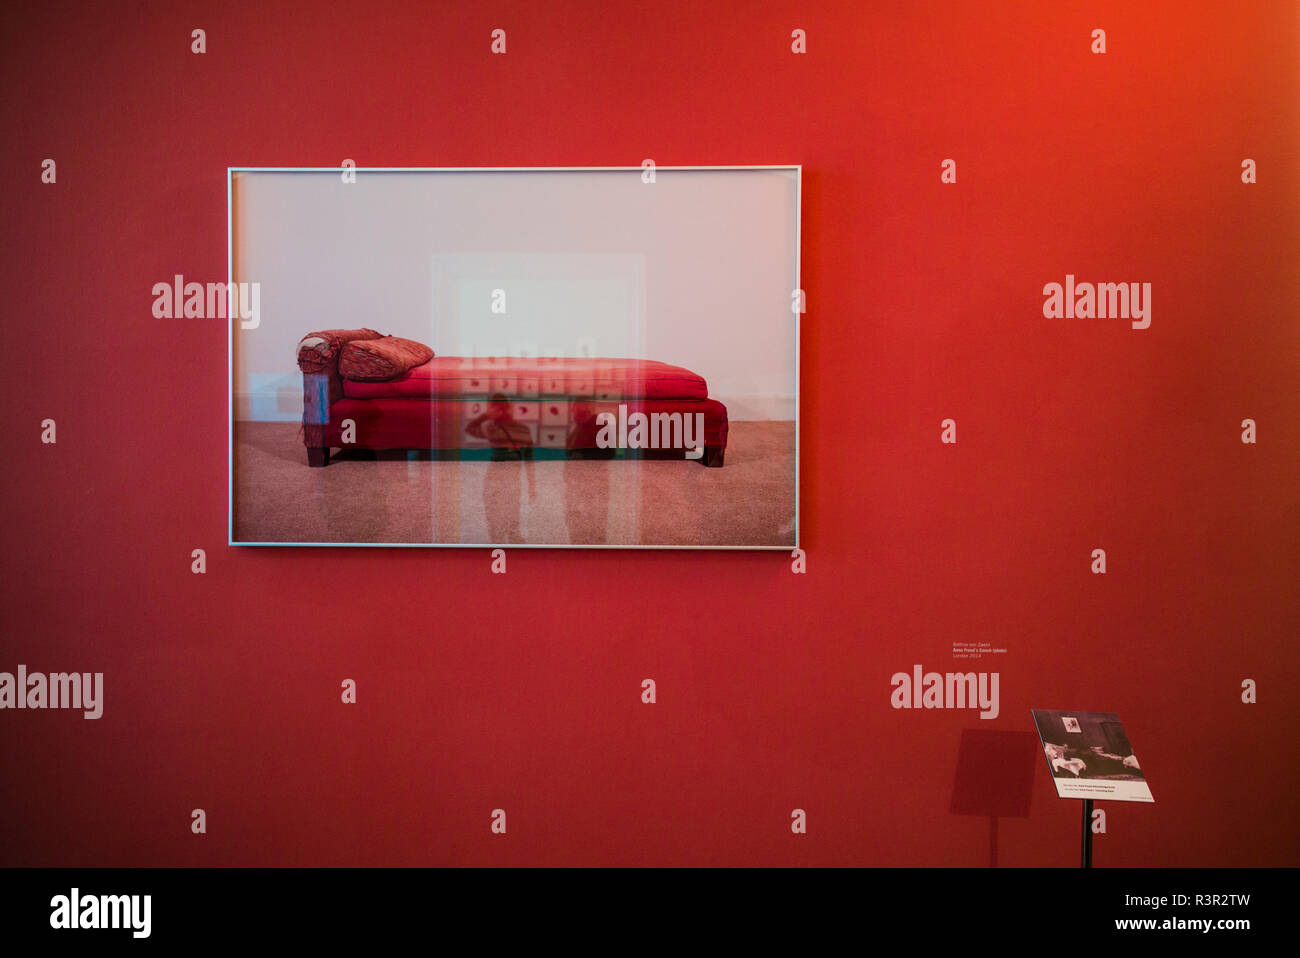 Austria, Vienna, Sigmund Freud Museum, psychoanalyst's couch (Editorial Use Only) - Stock Image